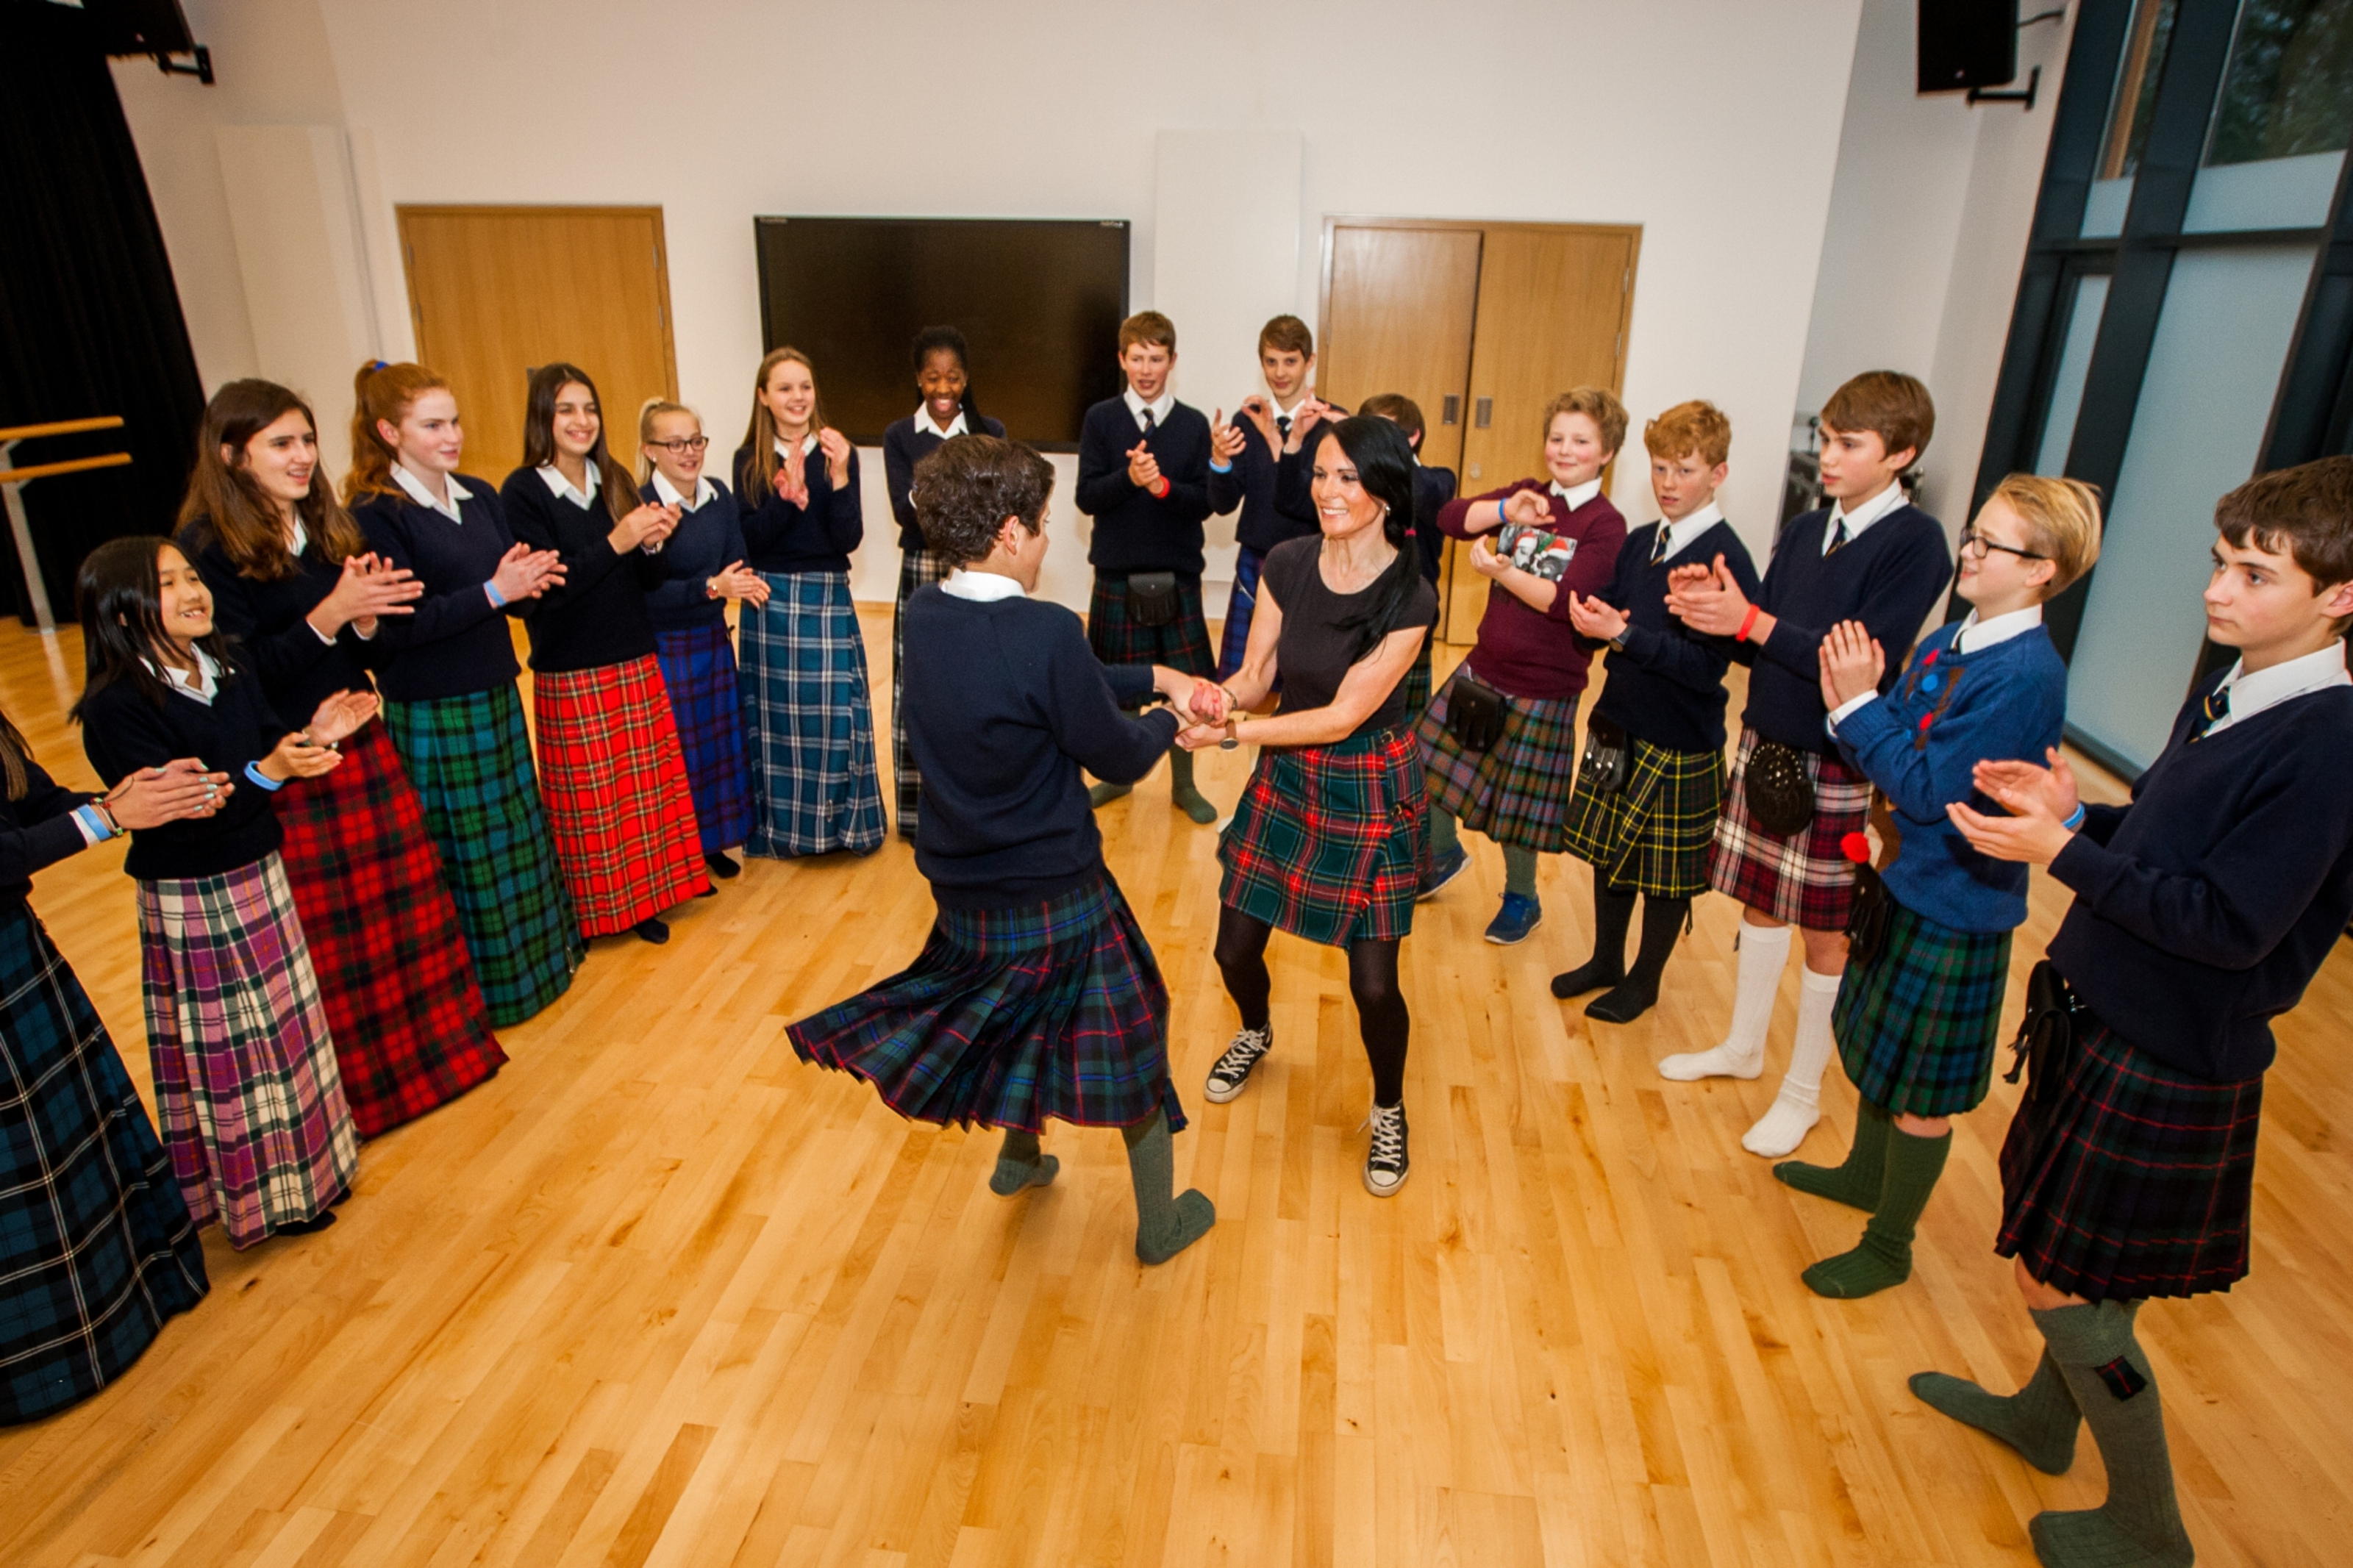 Gayle Ritchie spins with Juan Mianna during a social dancing class at Strathallan School.